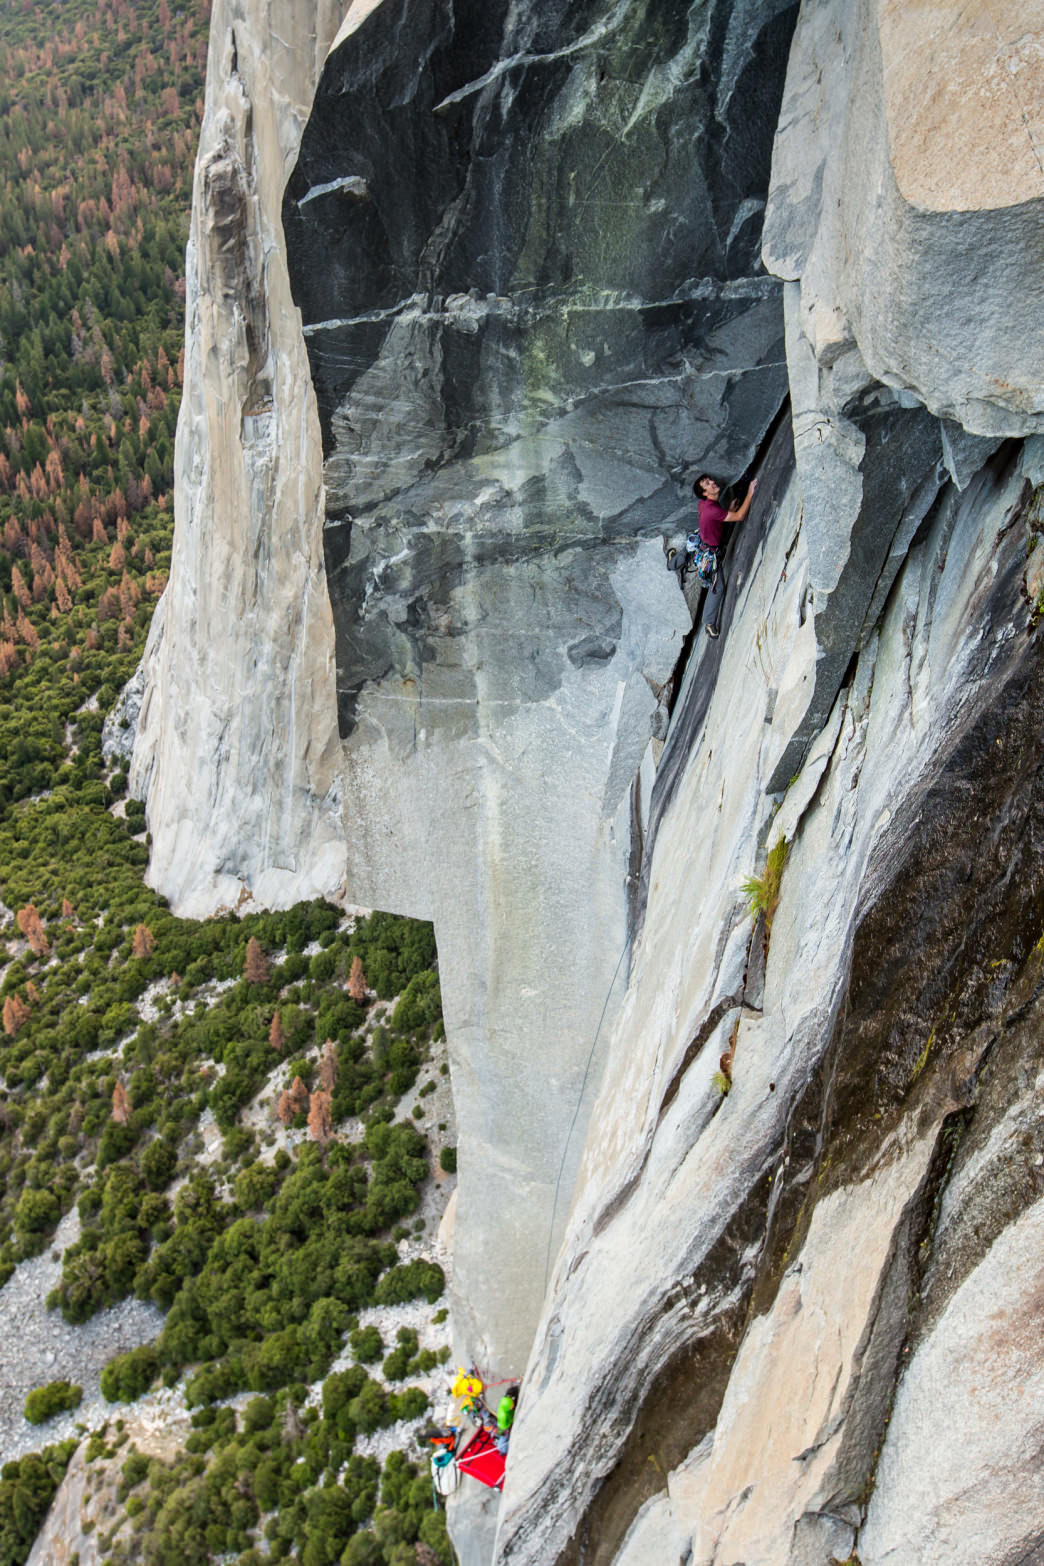 The Yosemite Valley, and the old schoolers who climbed there, set the standard for modern rock climbing.     Photo courtesy of Gramicci/Benjamin Ditto